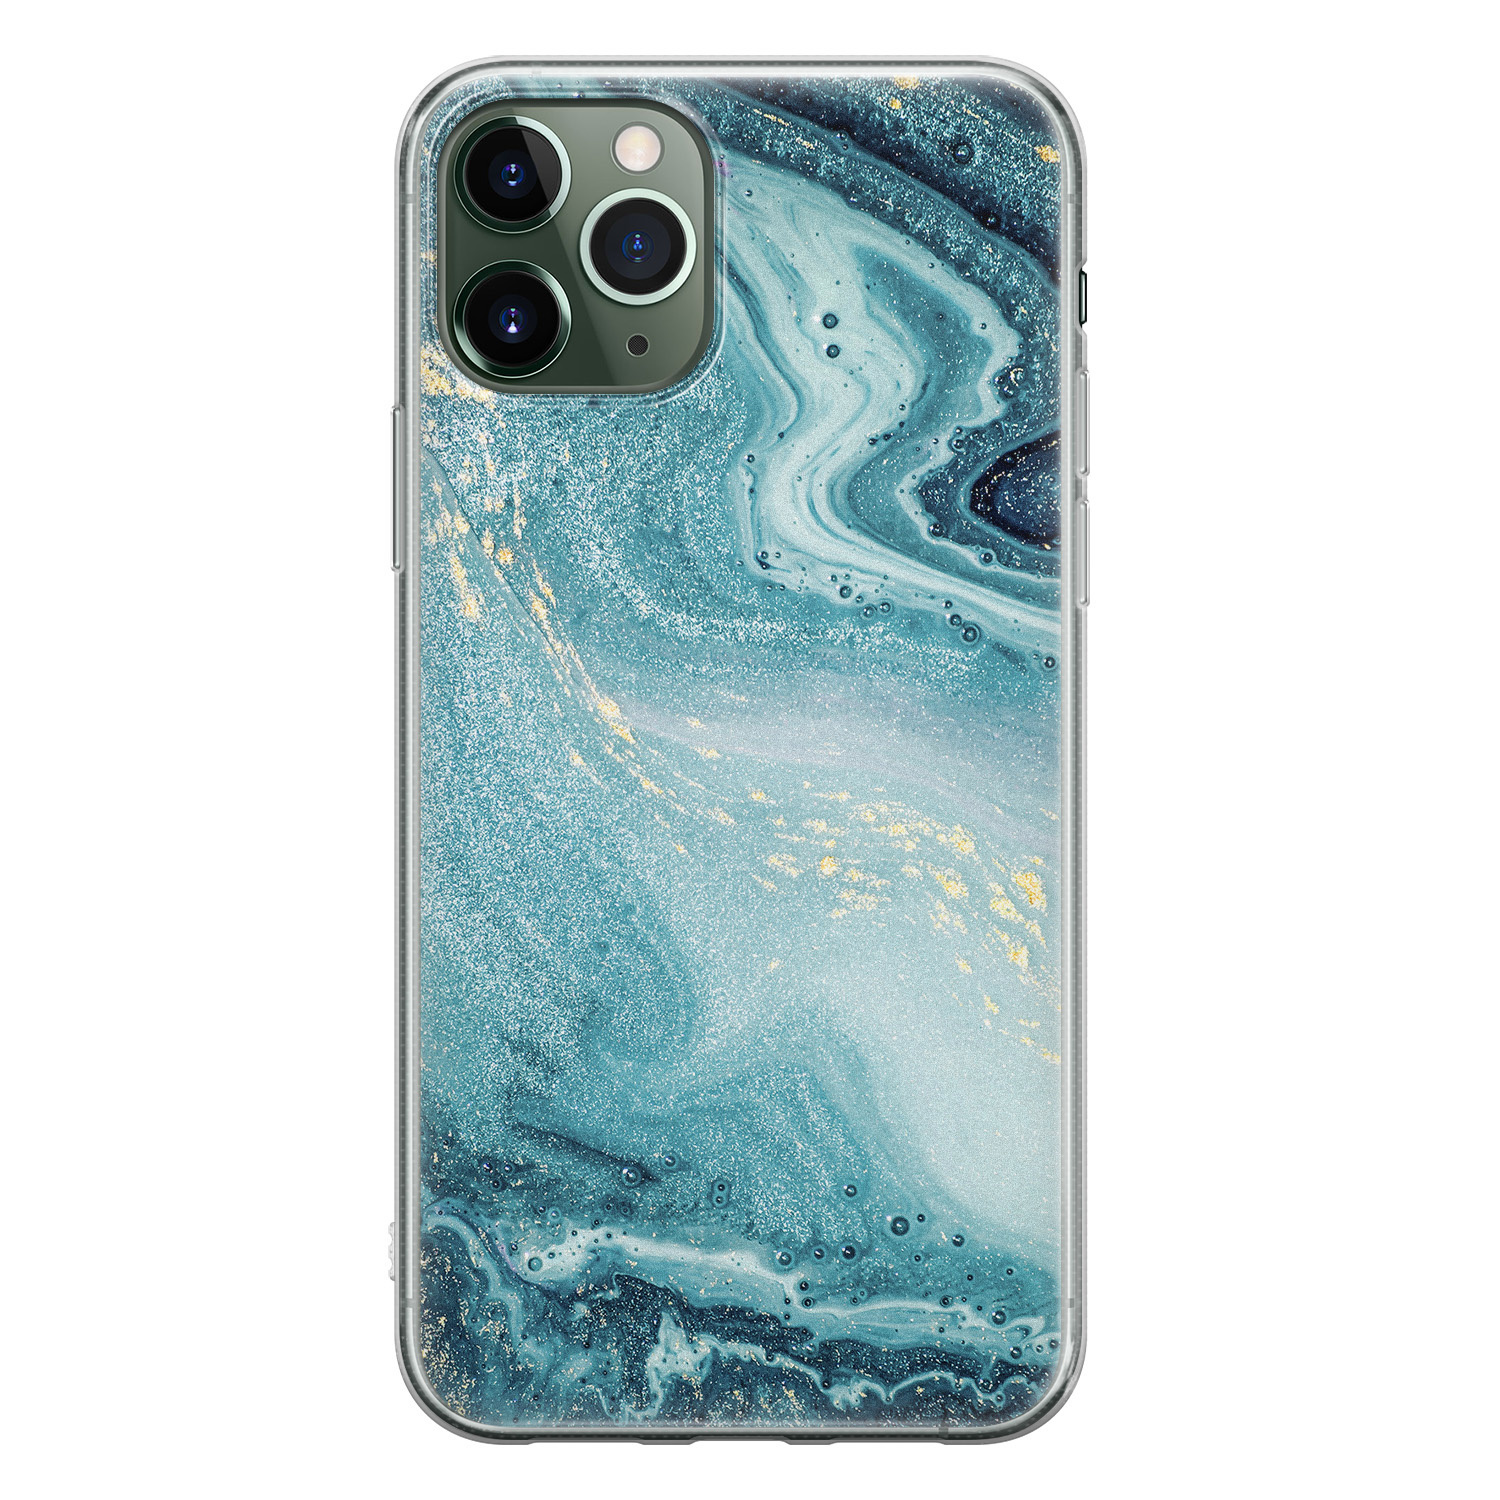 iPhone 11 Pro Max siliconen hoesje - Marmer blauw